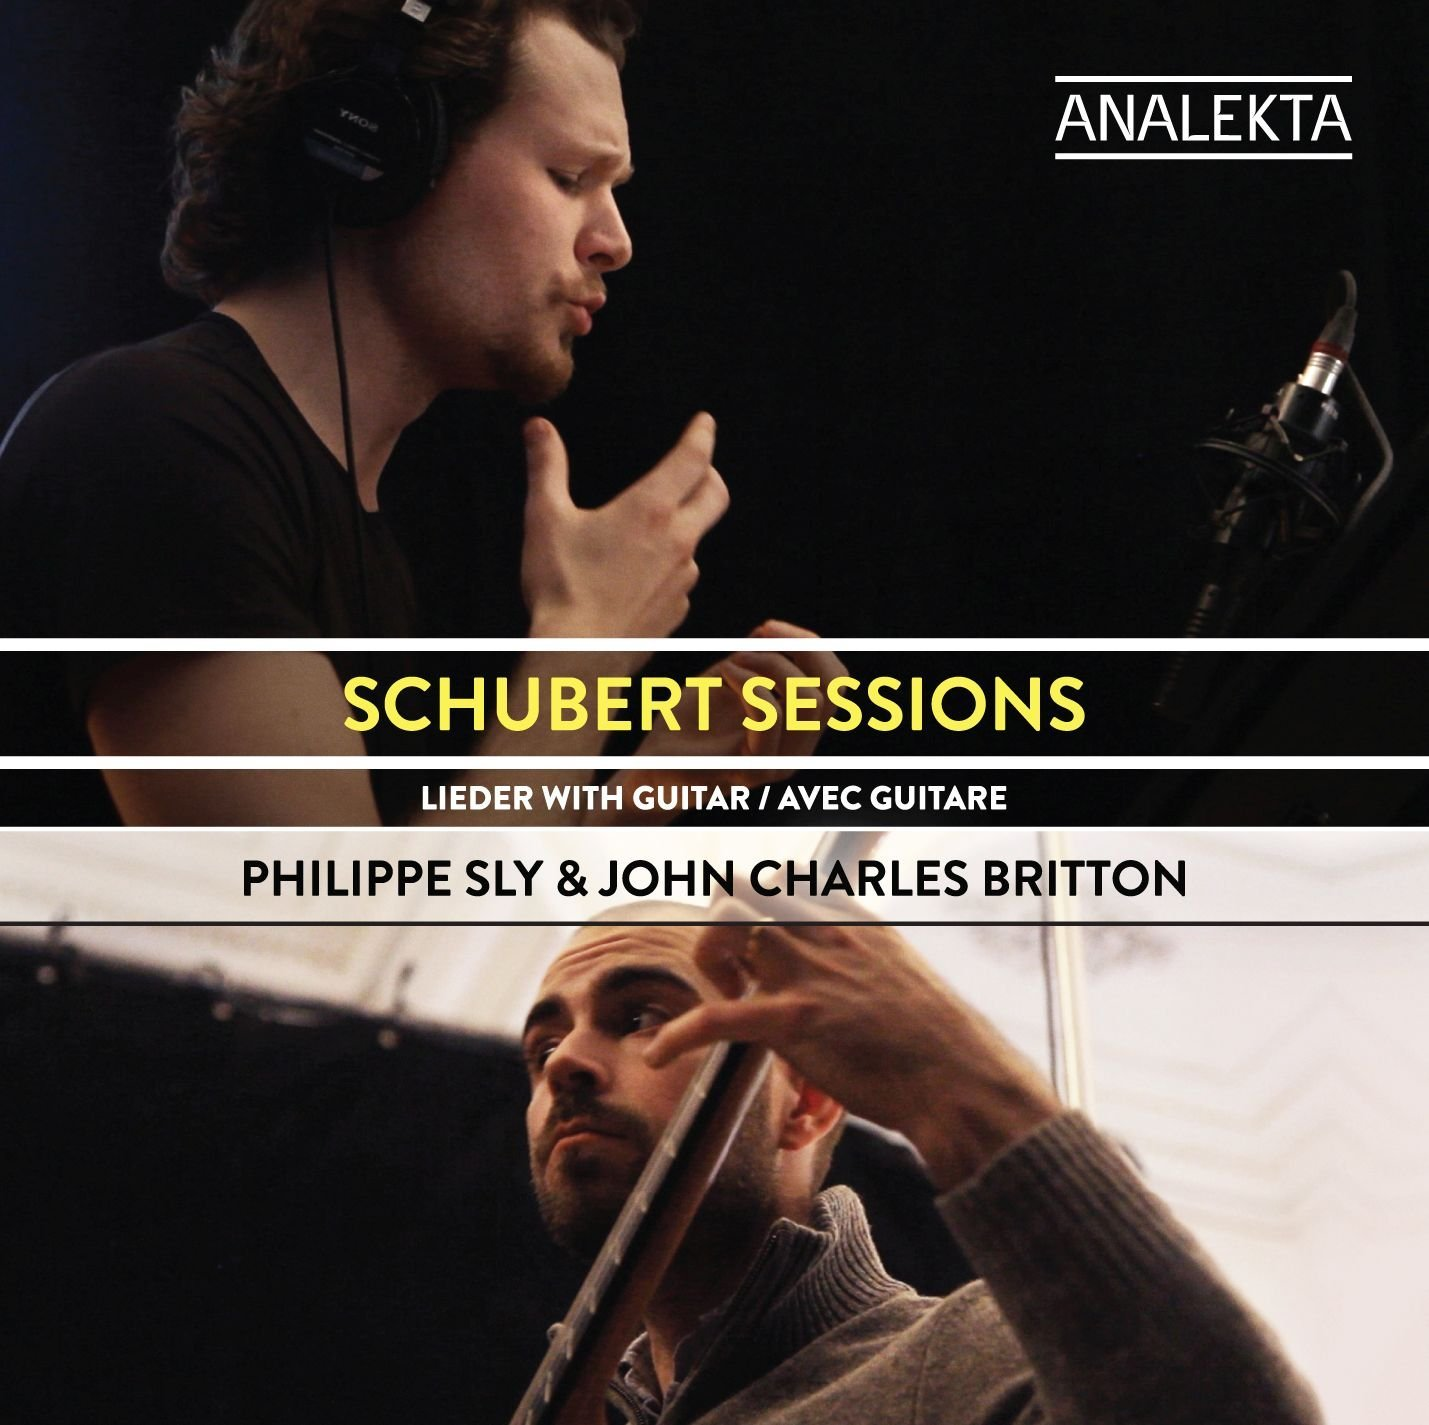 BEST LIEDER RECORDING OF 2016: Franz Schubert - SCHUBERT SESSIONS, Lieder with Guitar (Analekta AN 2 9999)